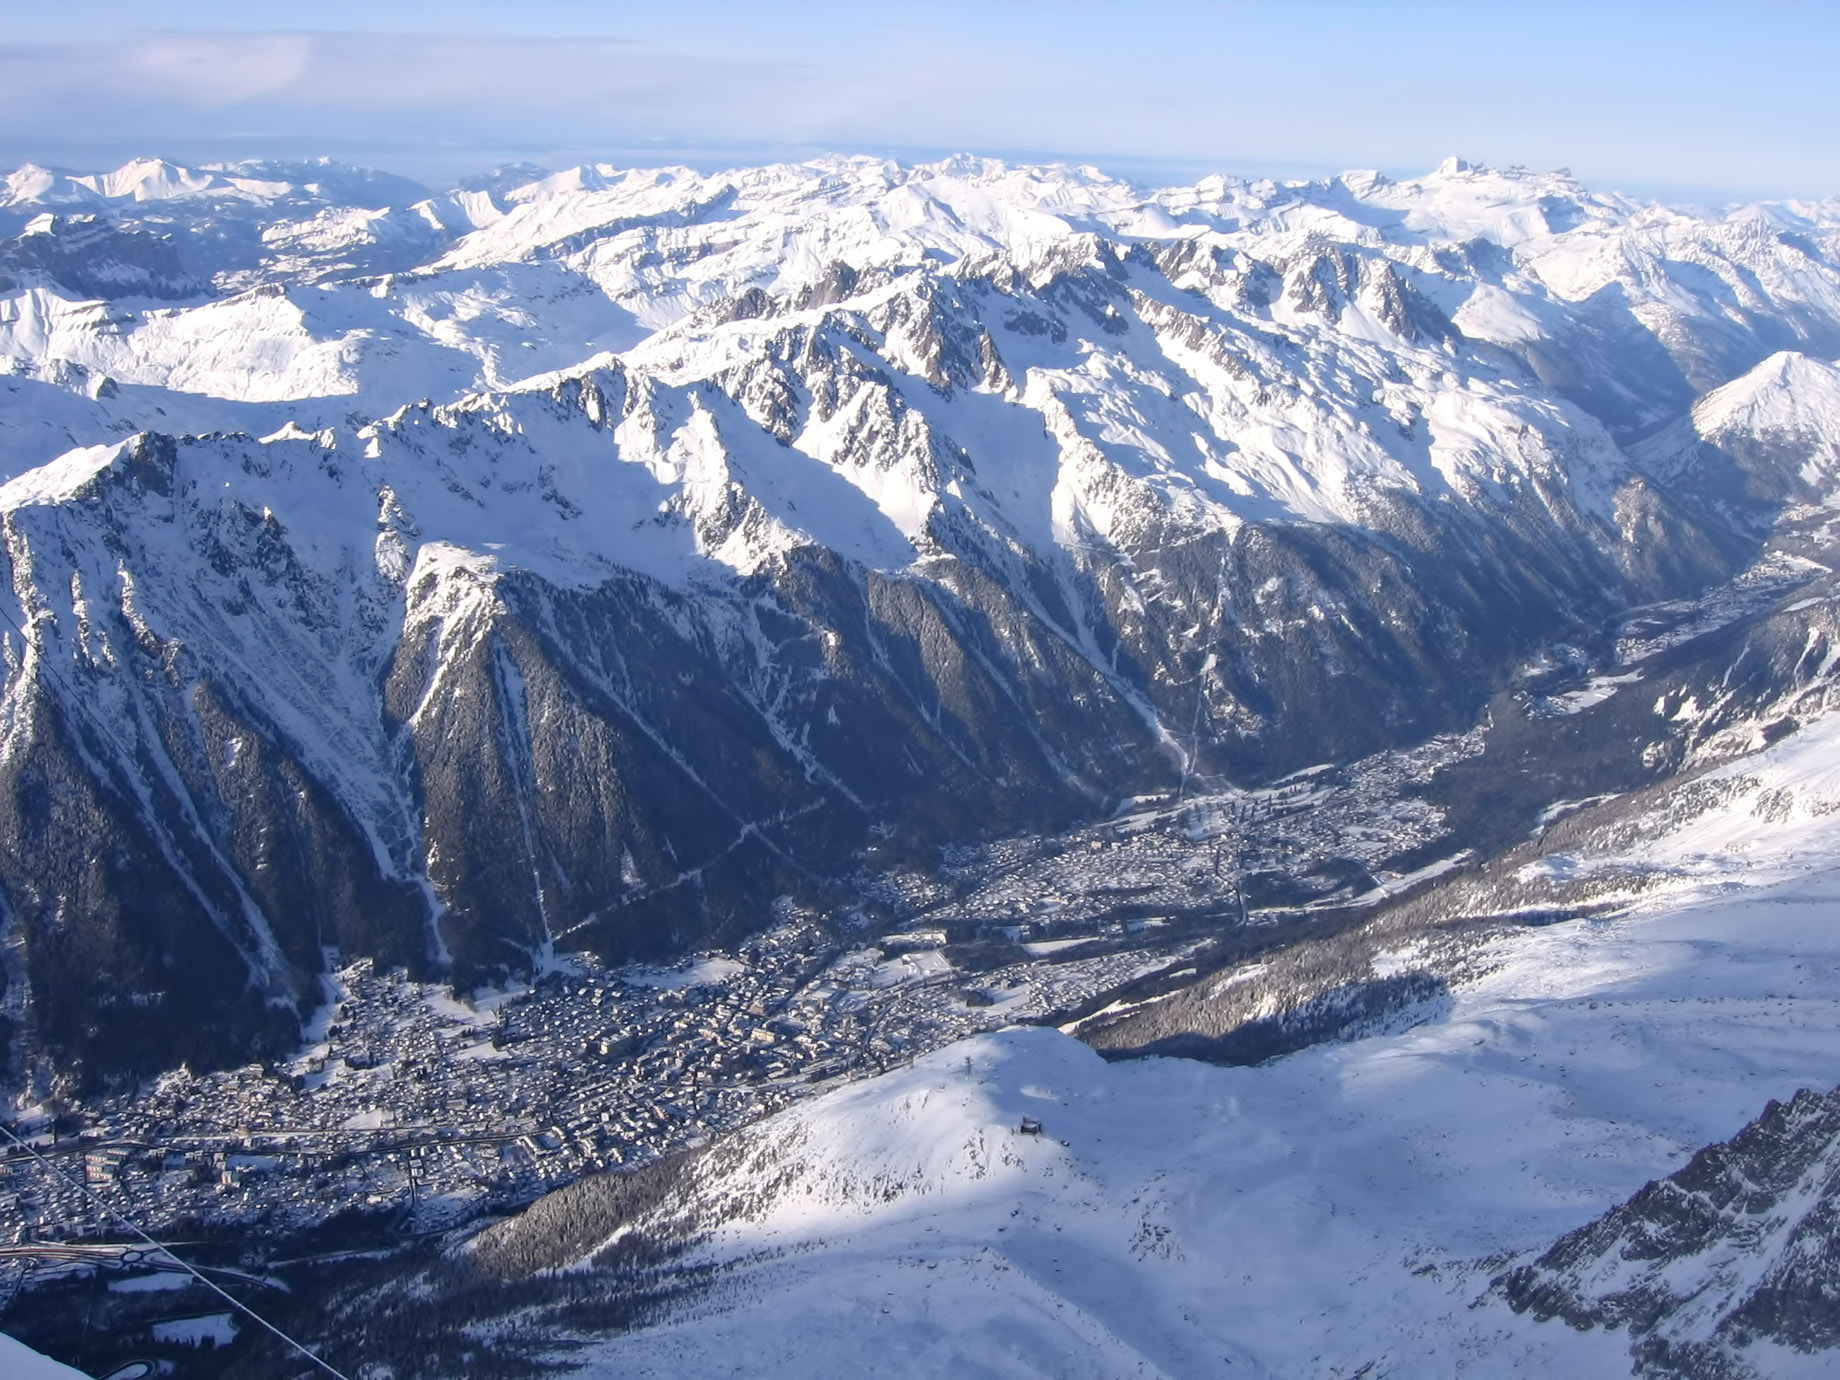 Chamonix – French Alps Mountain Resort – An Exclusive Très Chic Luxury Winter Paradise